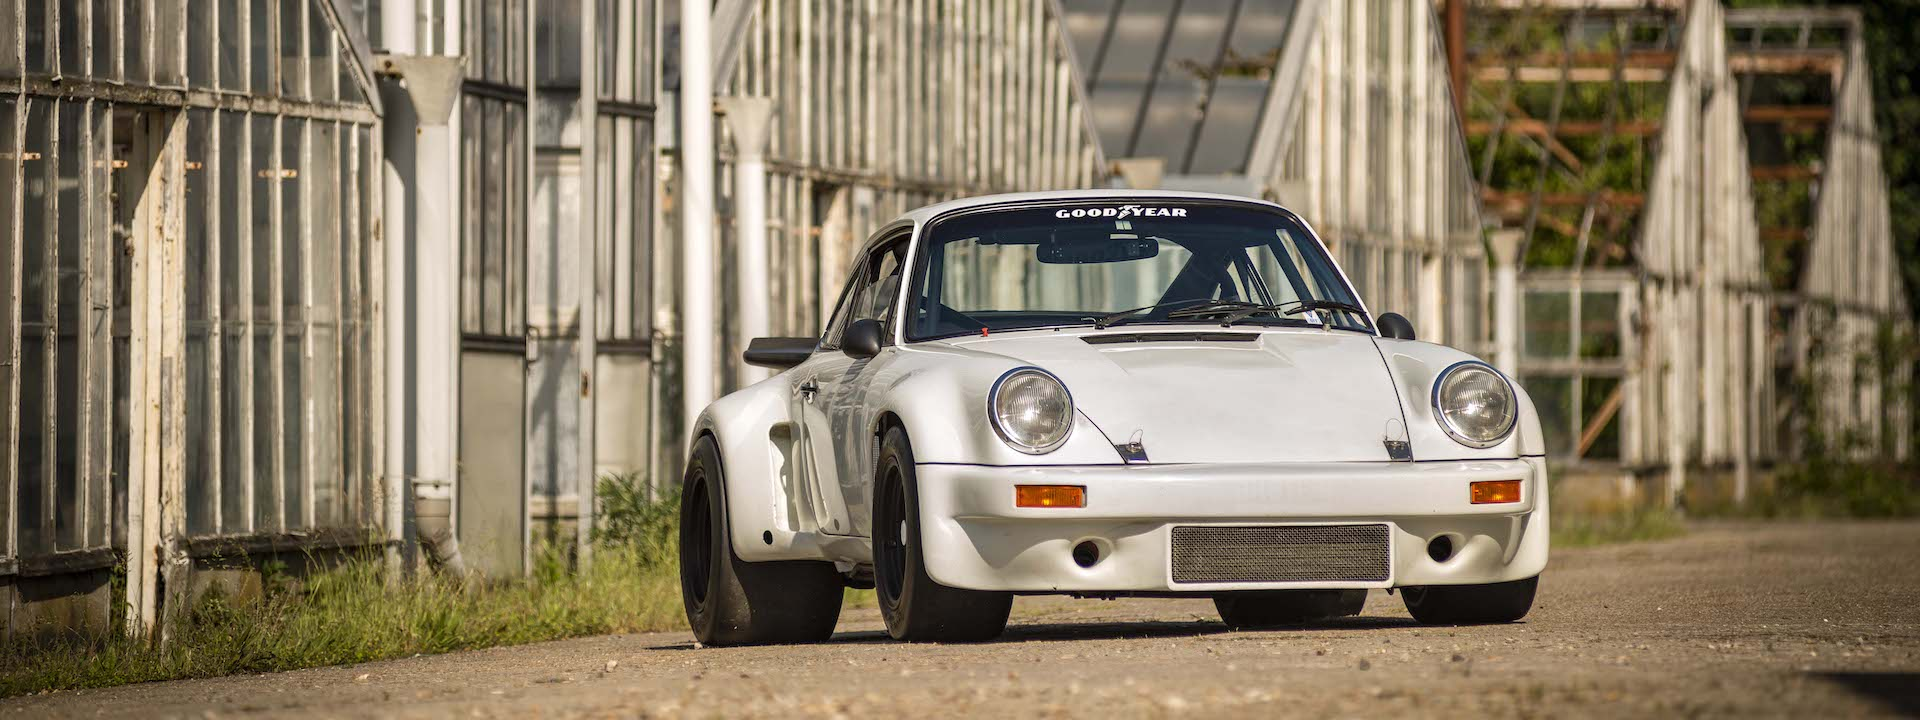 Monaco auction: 1974 Porsche Carrera RSR 3L